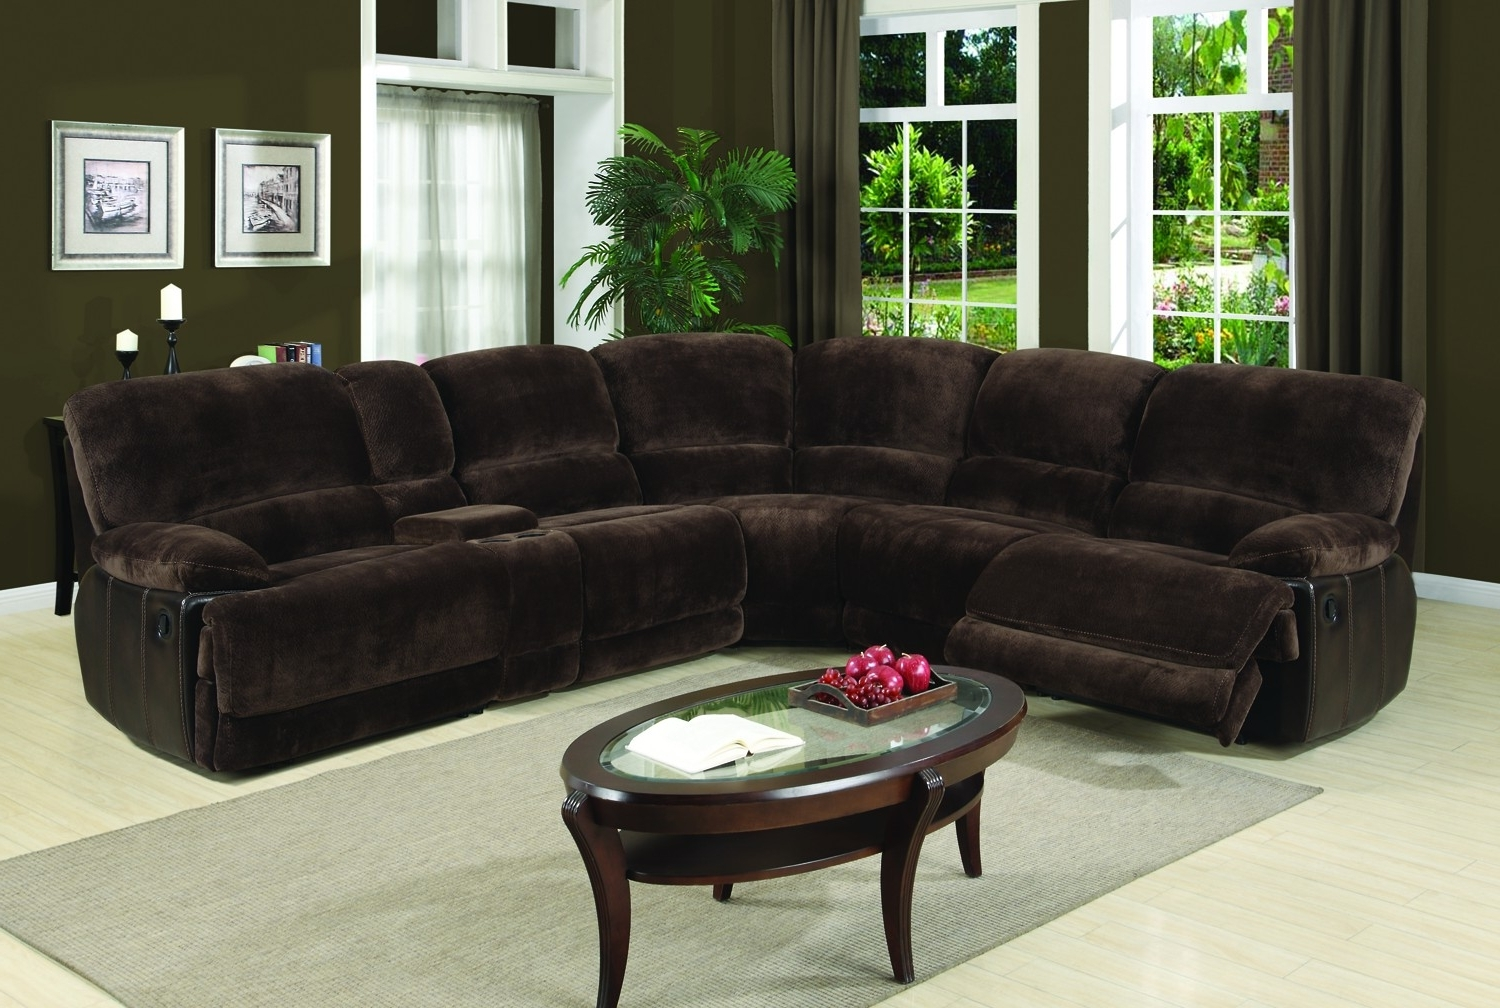 Widely Used Eli Dark Brown 6 Piece Sectional Sofa For $1,698.00 – Furnitureusa Intended For Sectional Sofas That Come In Pieces (Gallery 16 of 20)